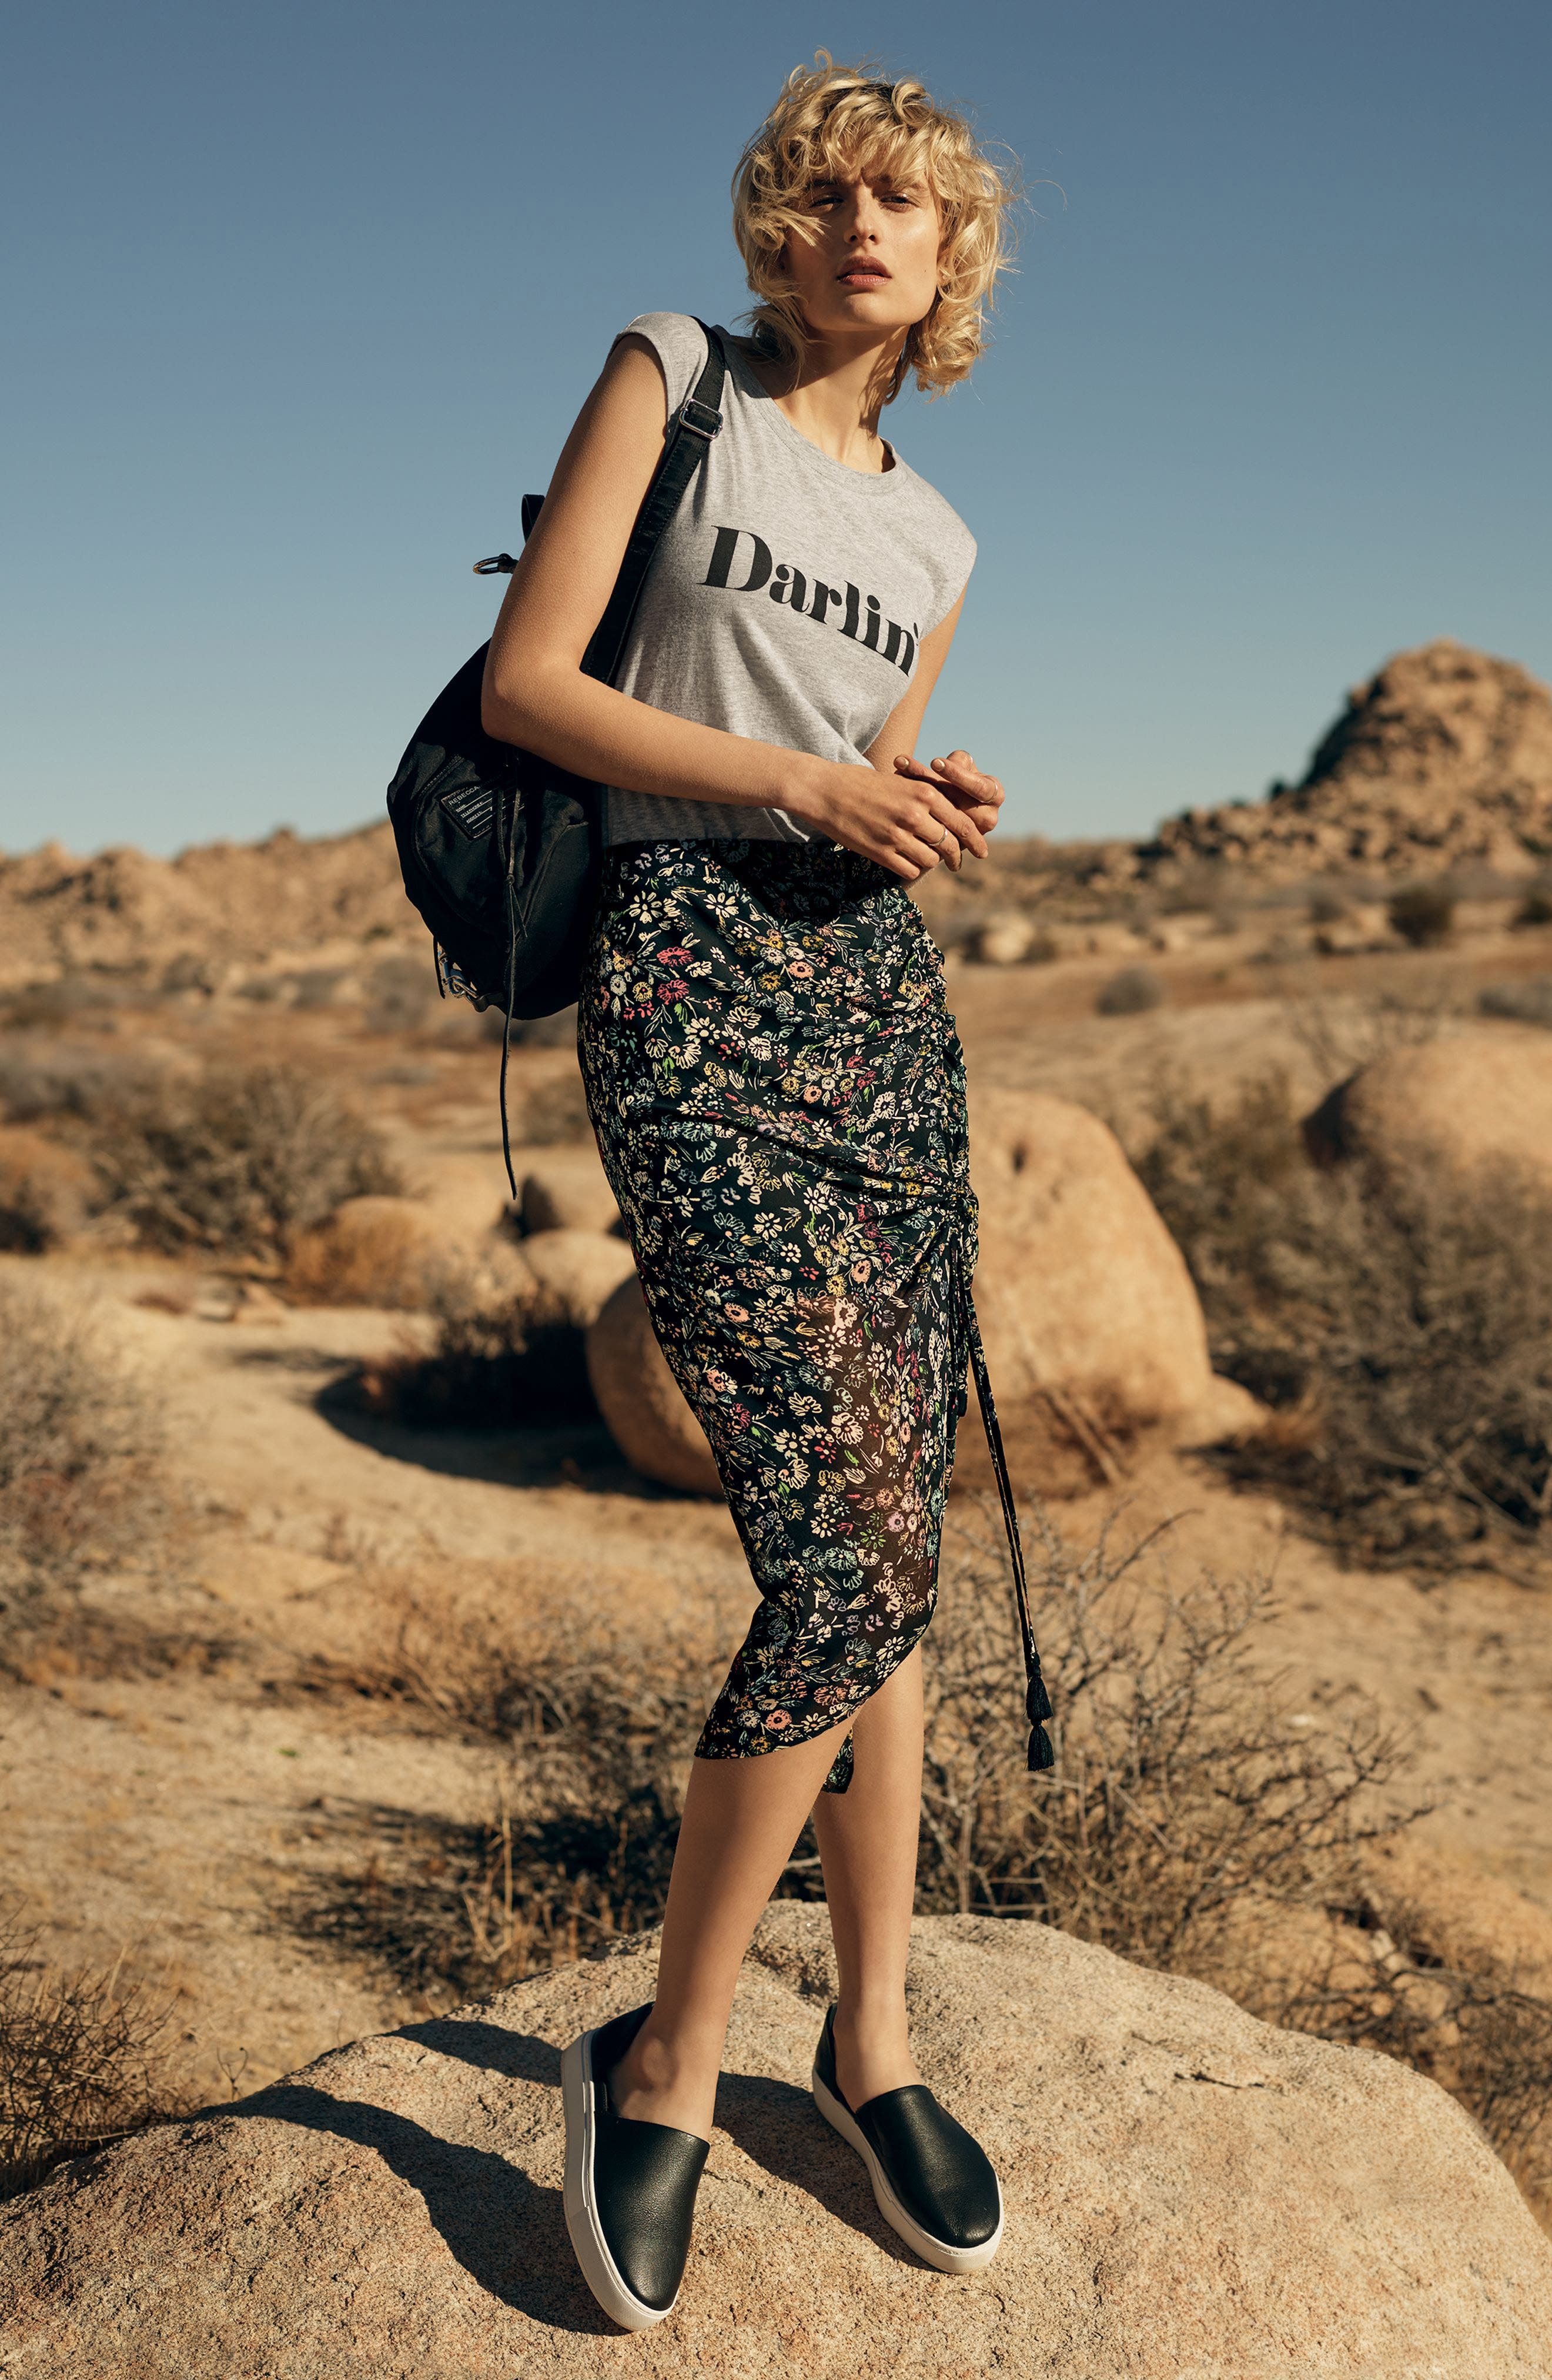 Rebecca Minkoff Tee & Skirt Outfit with Accessories